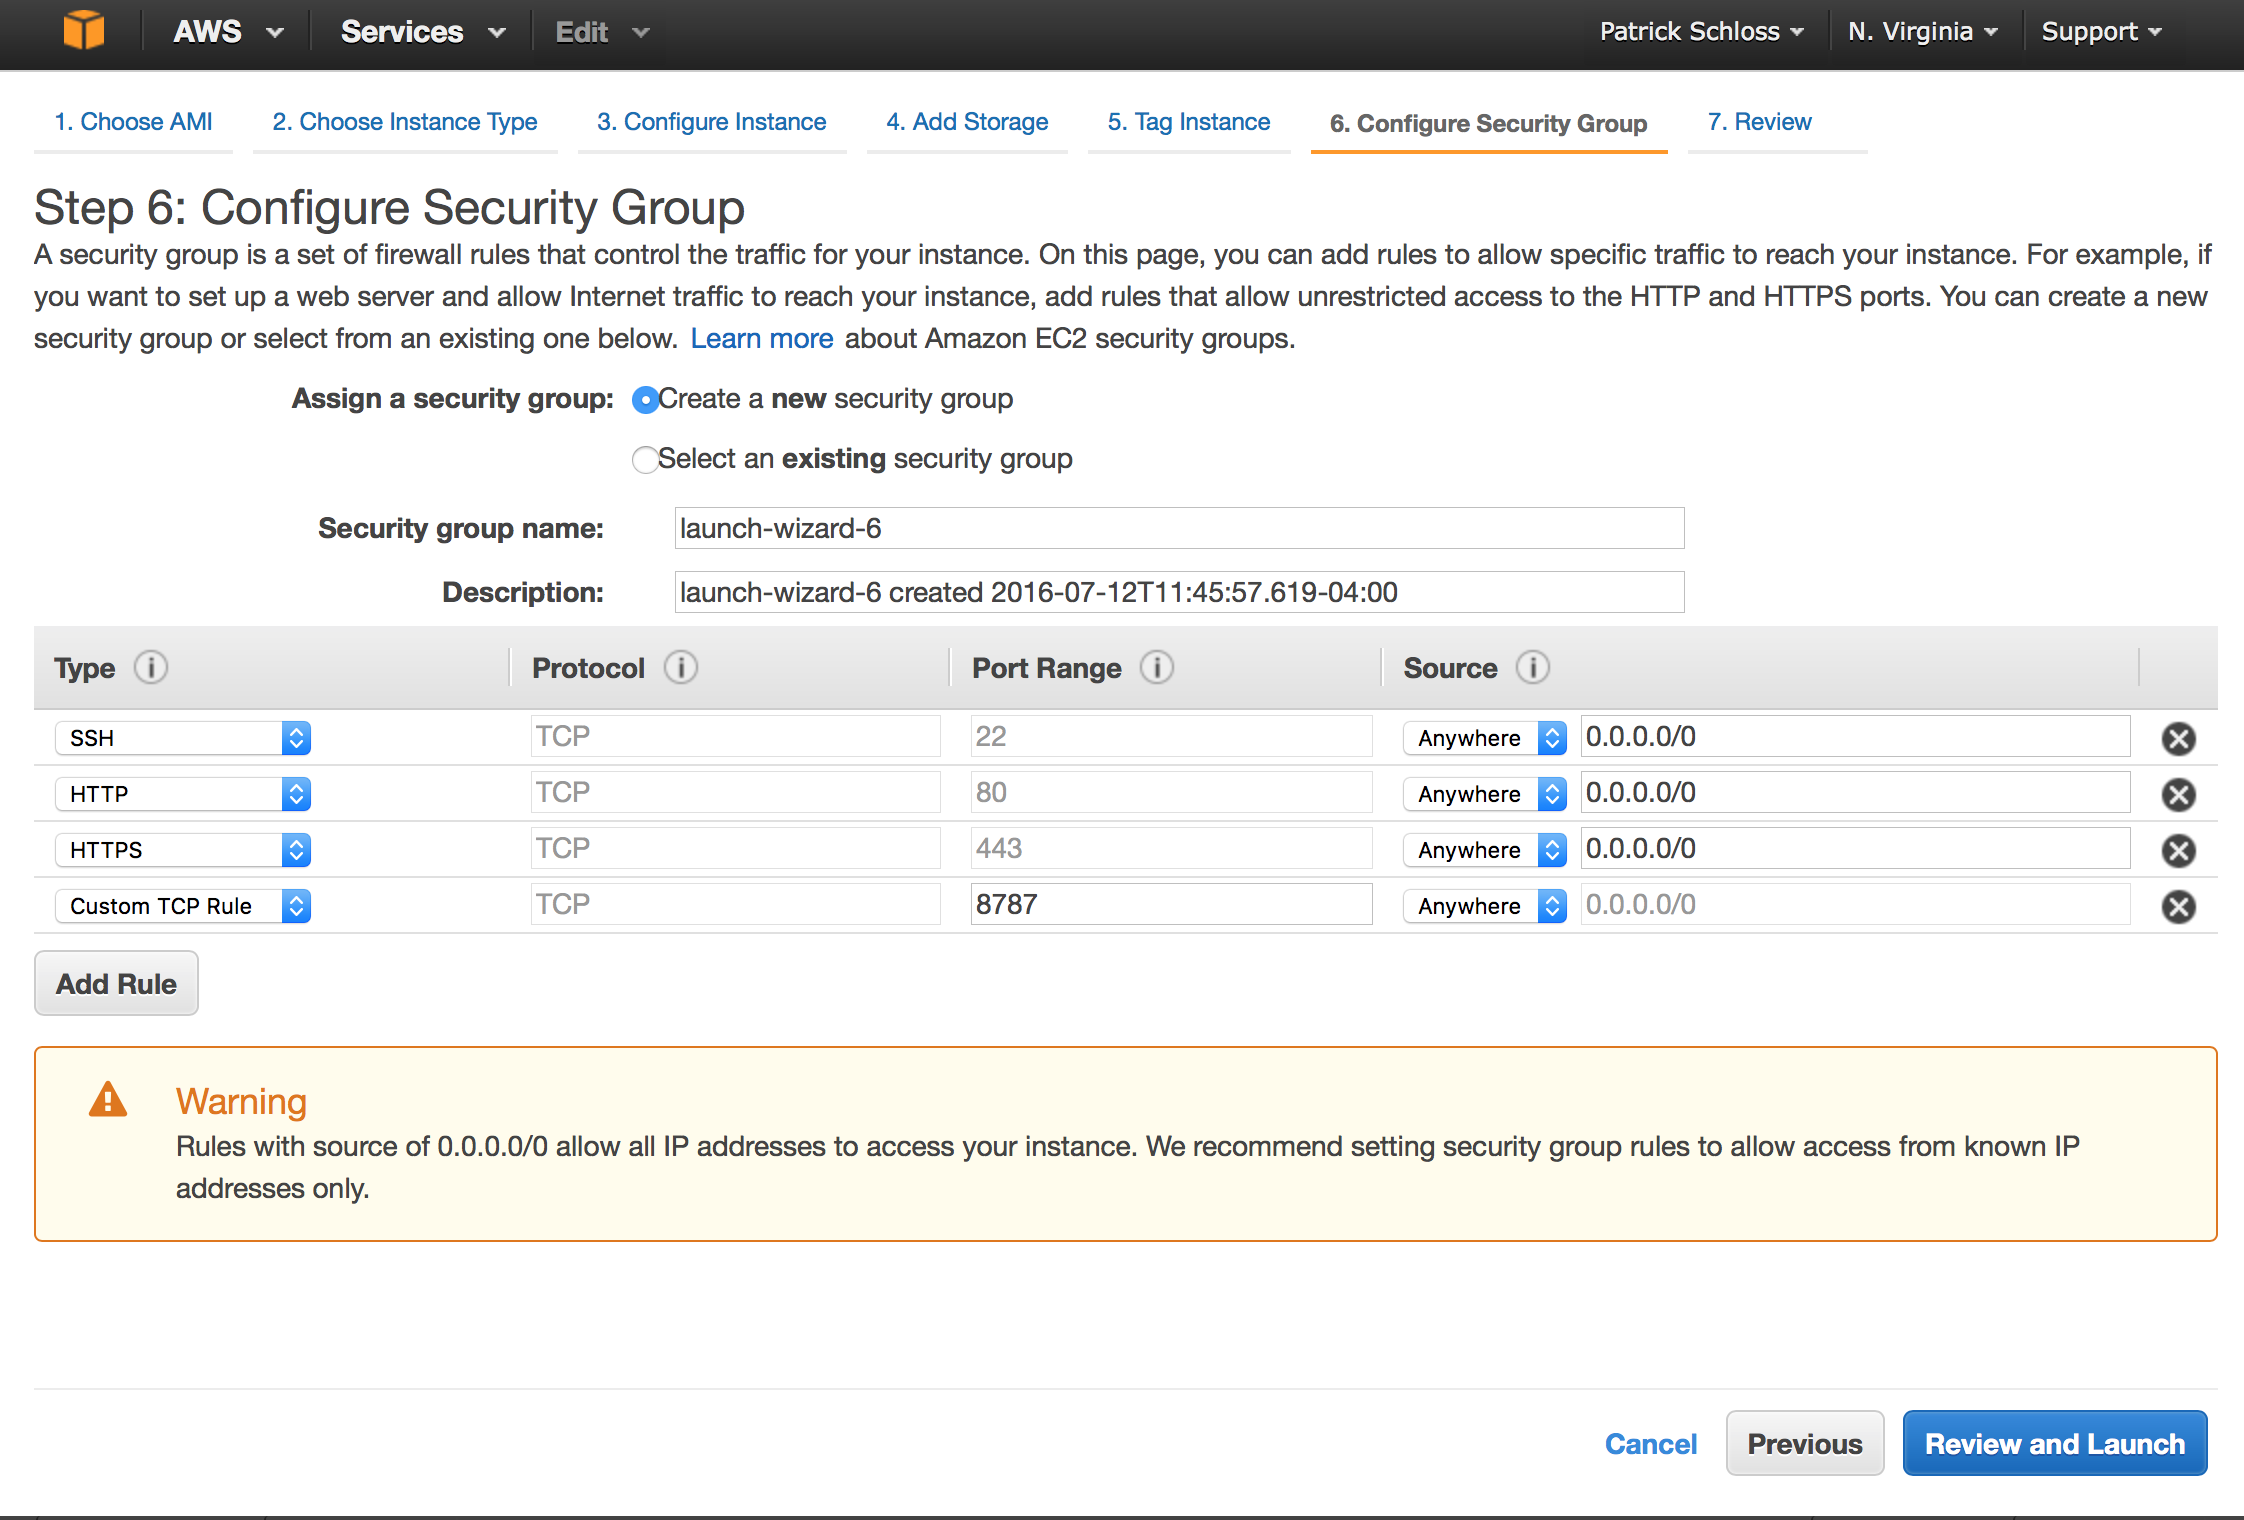 Configuring the security group